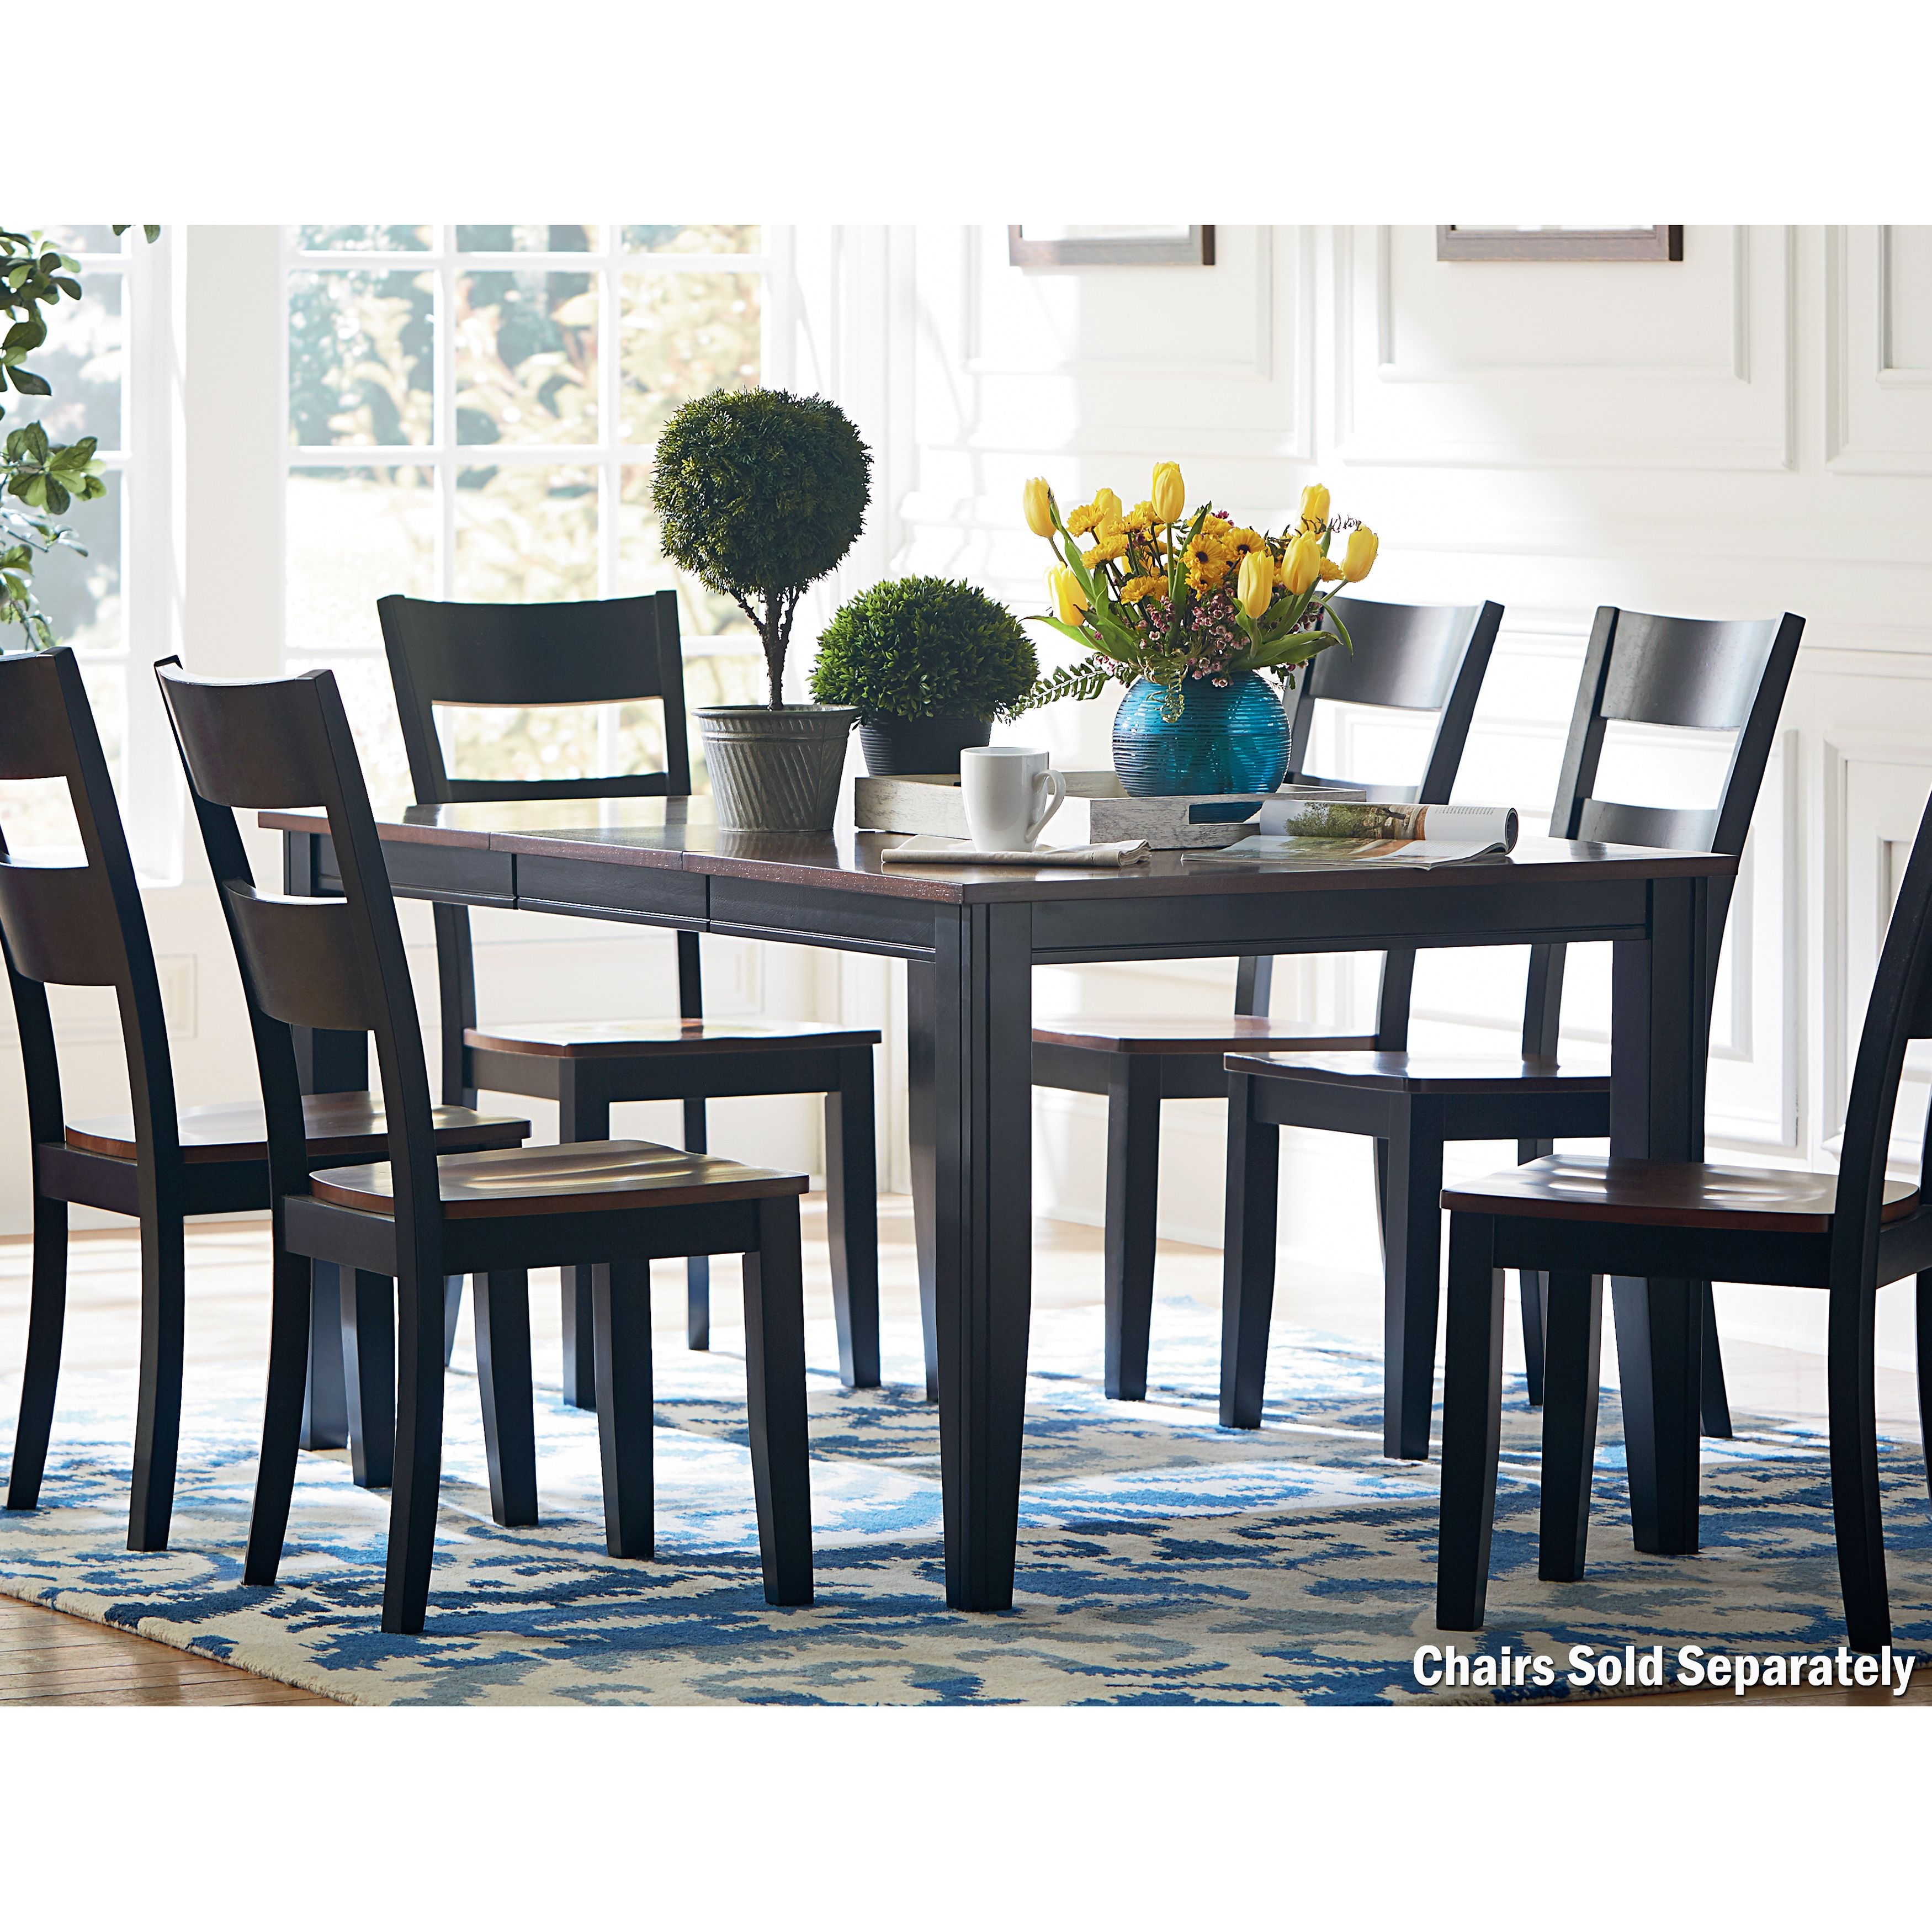 Three great finishes and two table styles